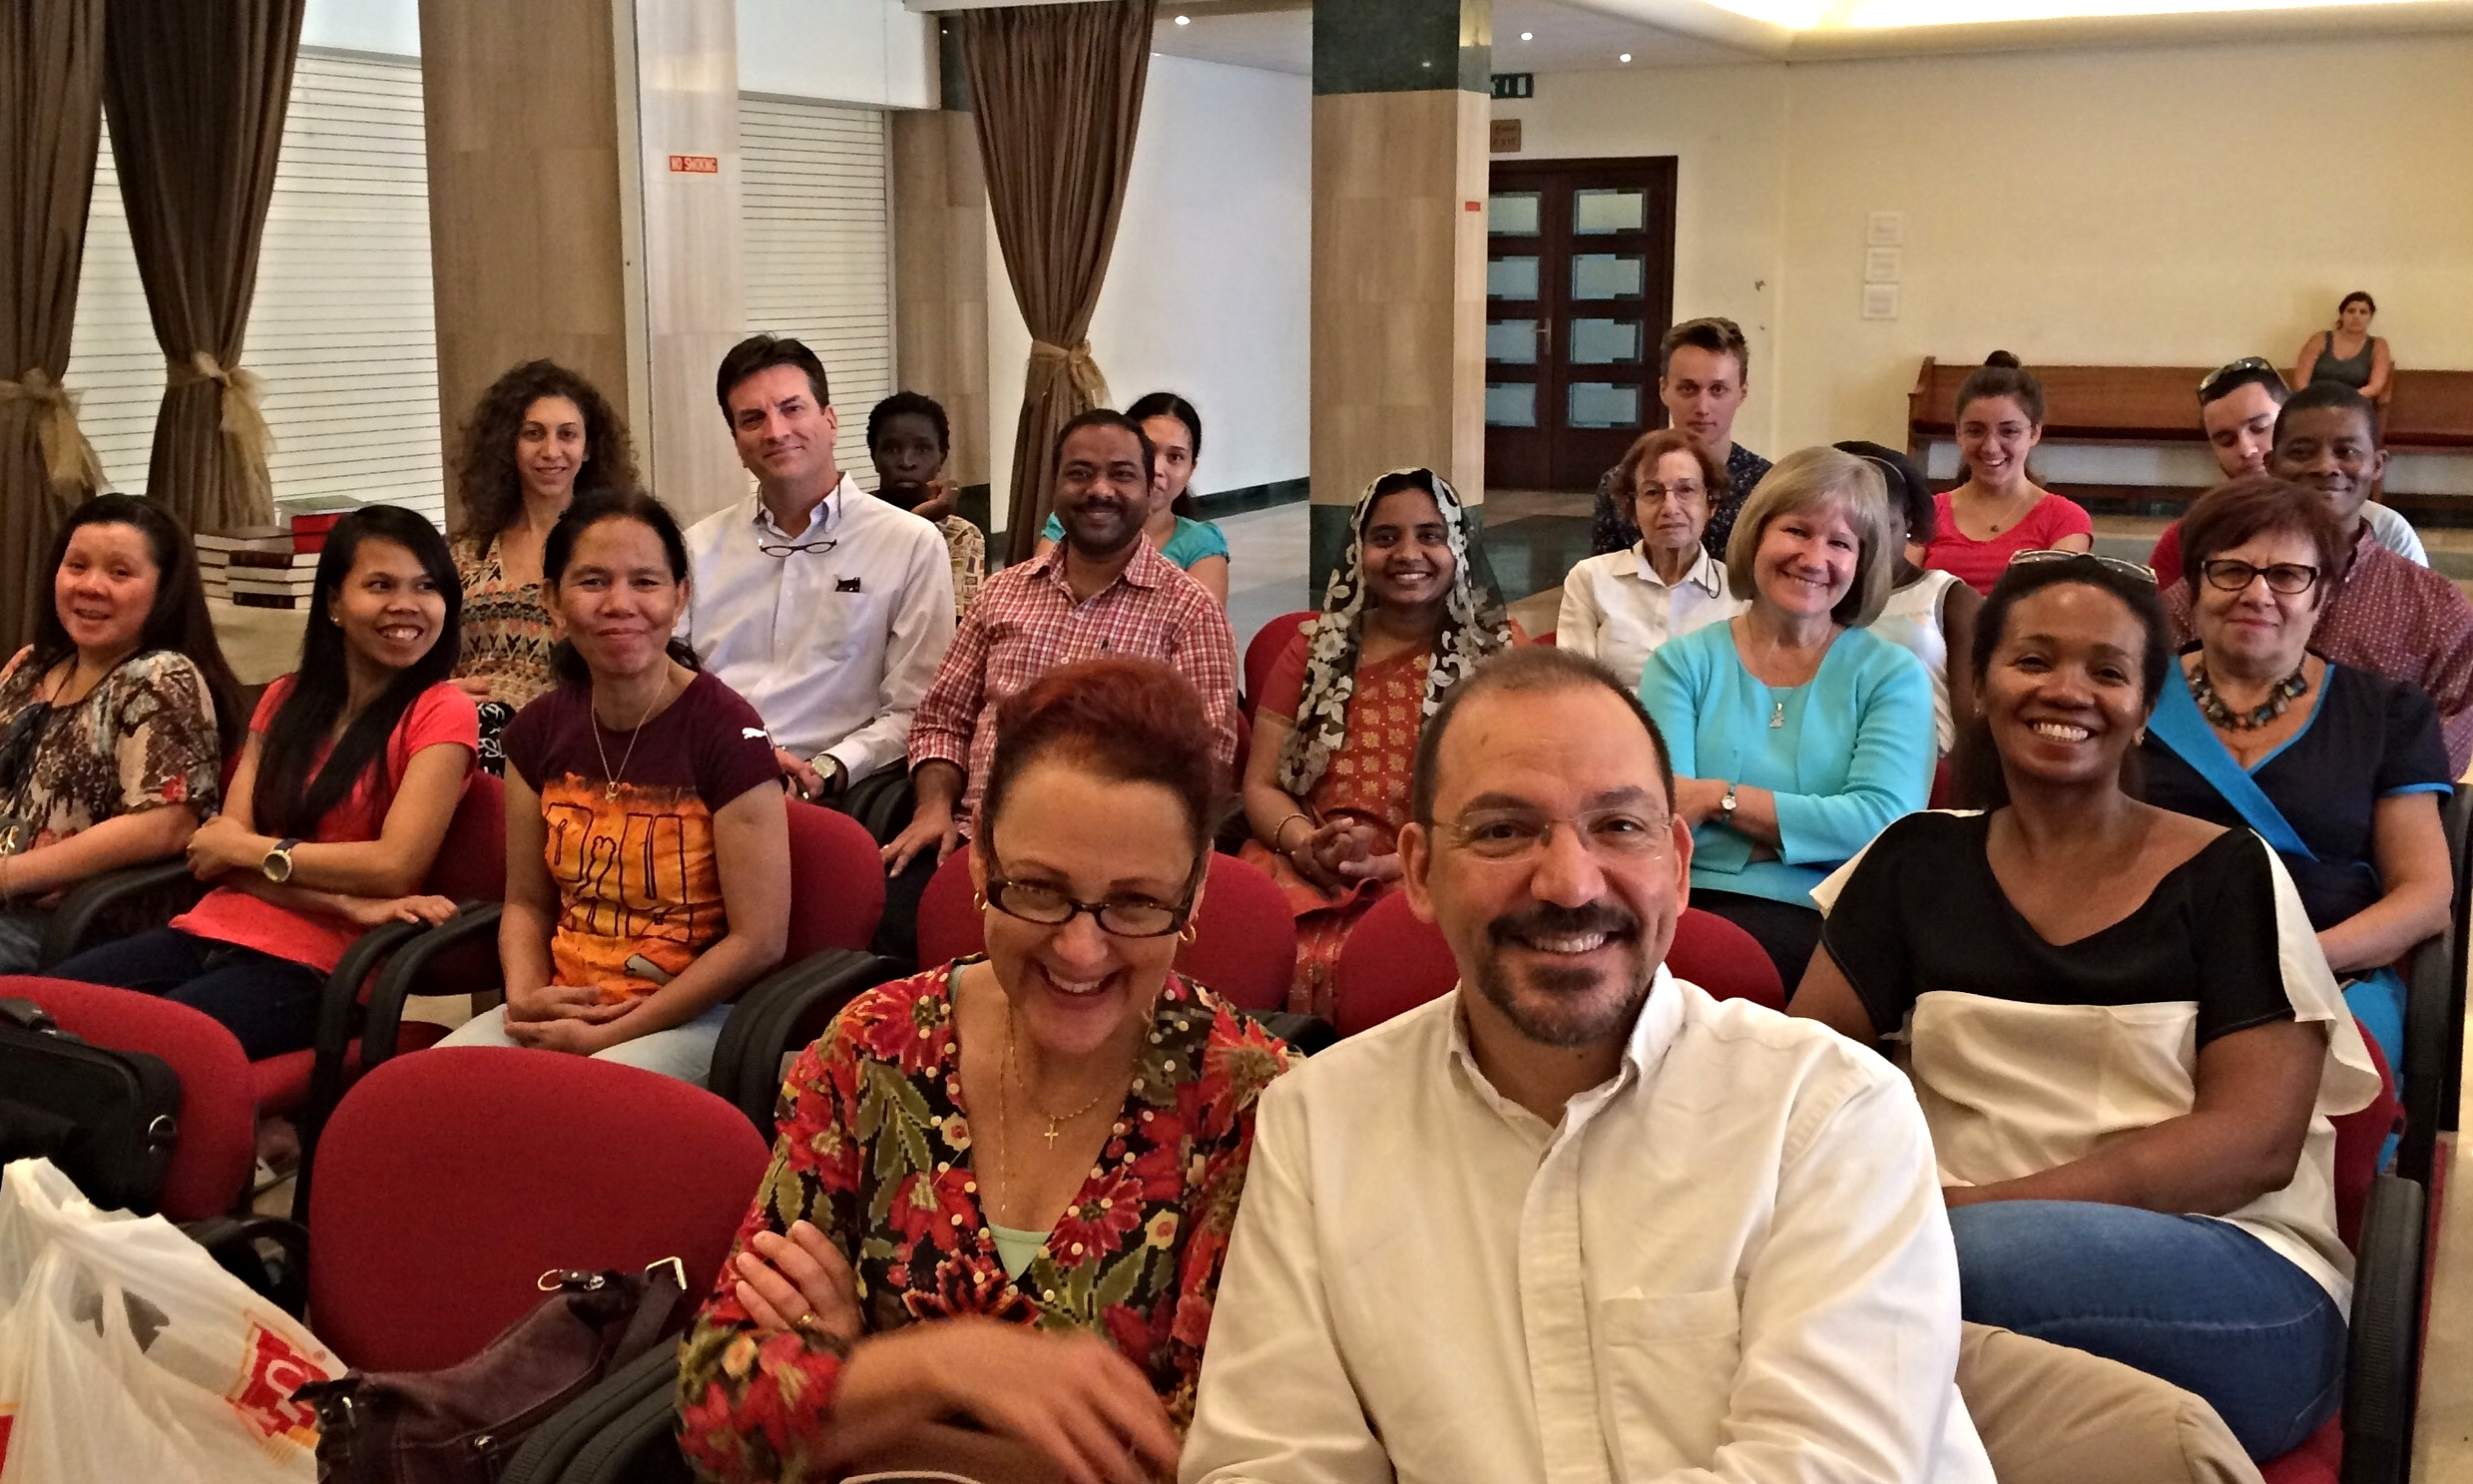 Rev. Robert Hamd and his wife Joyce in the front row this morning with worshipers in the international church gathering.